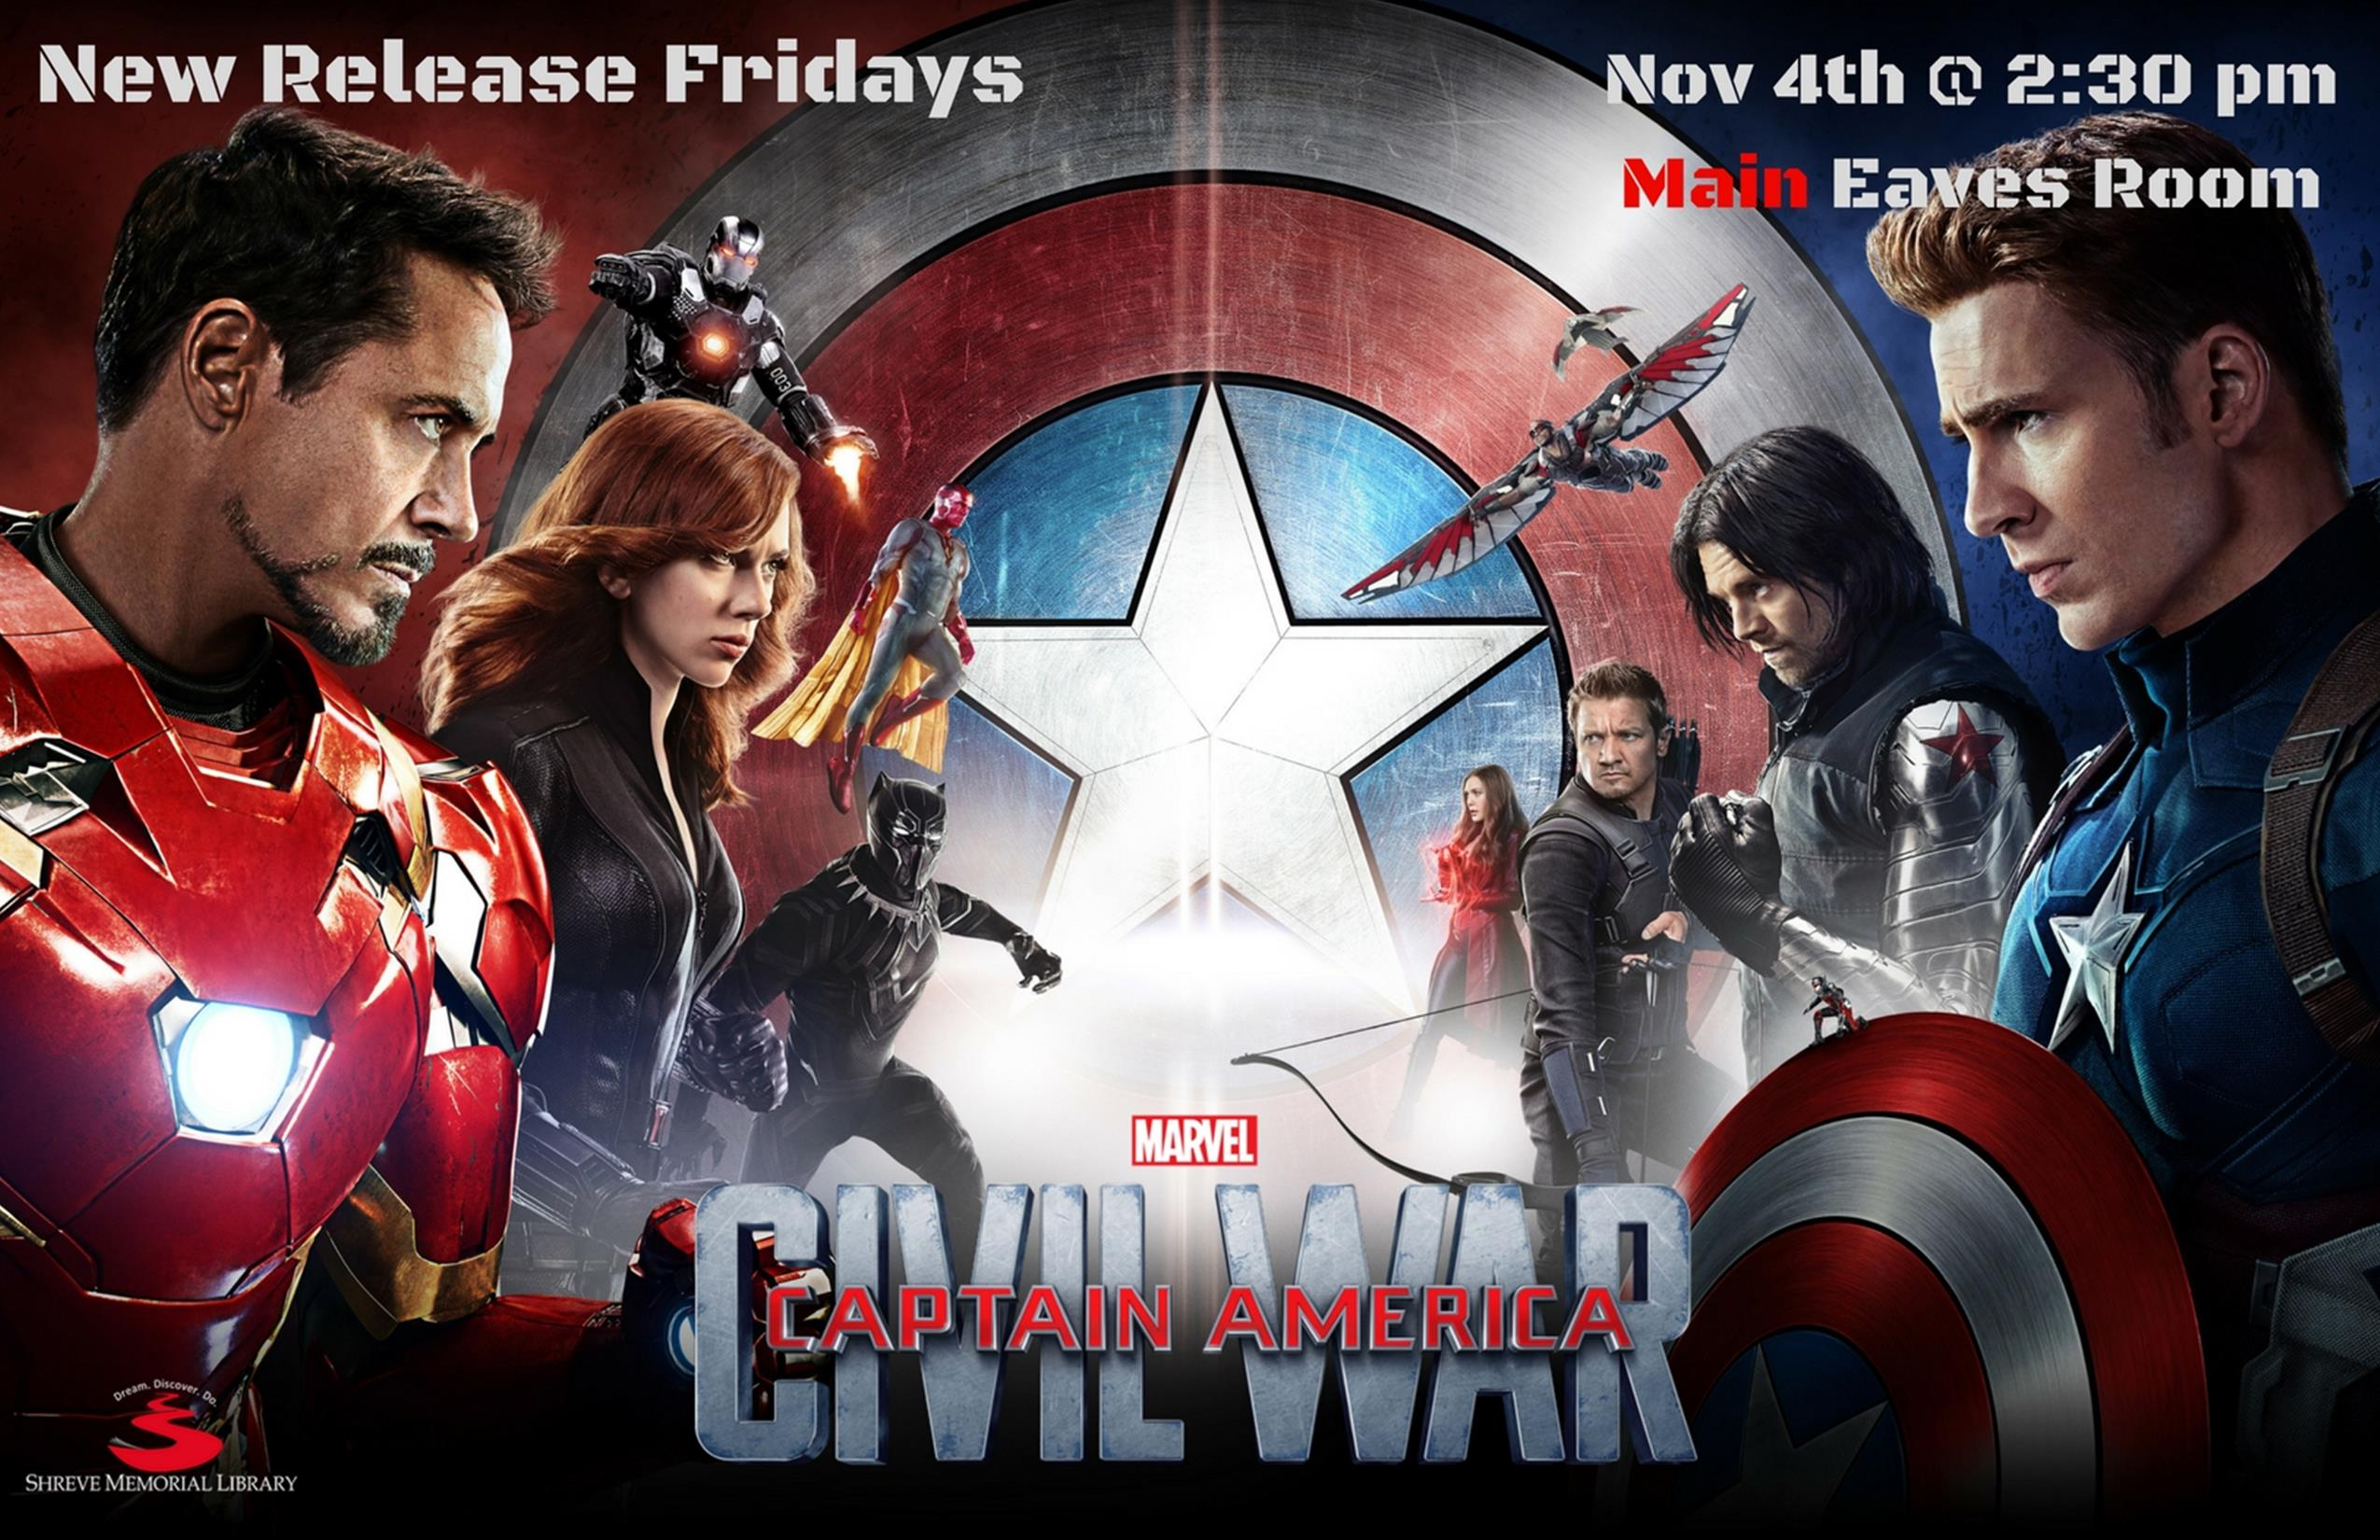 New Release Fridays: Captain America Civil War @ Shreve Memorial Library - Main Branch | Shreveport | Louisiana | United States